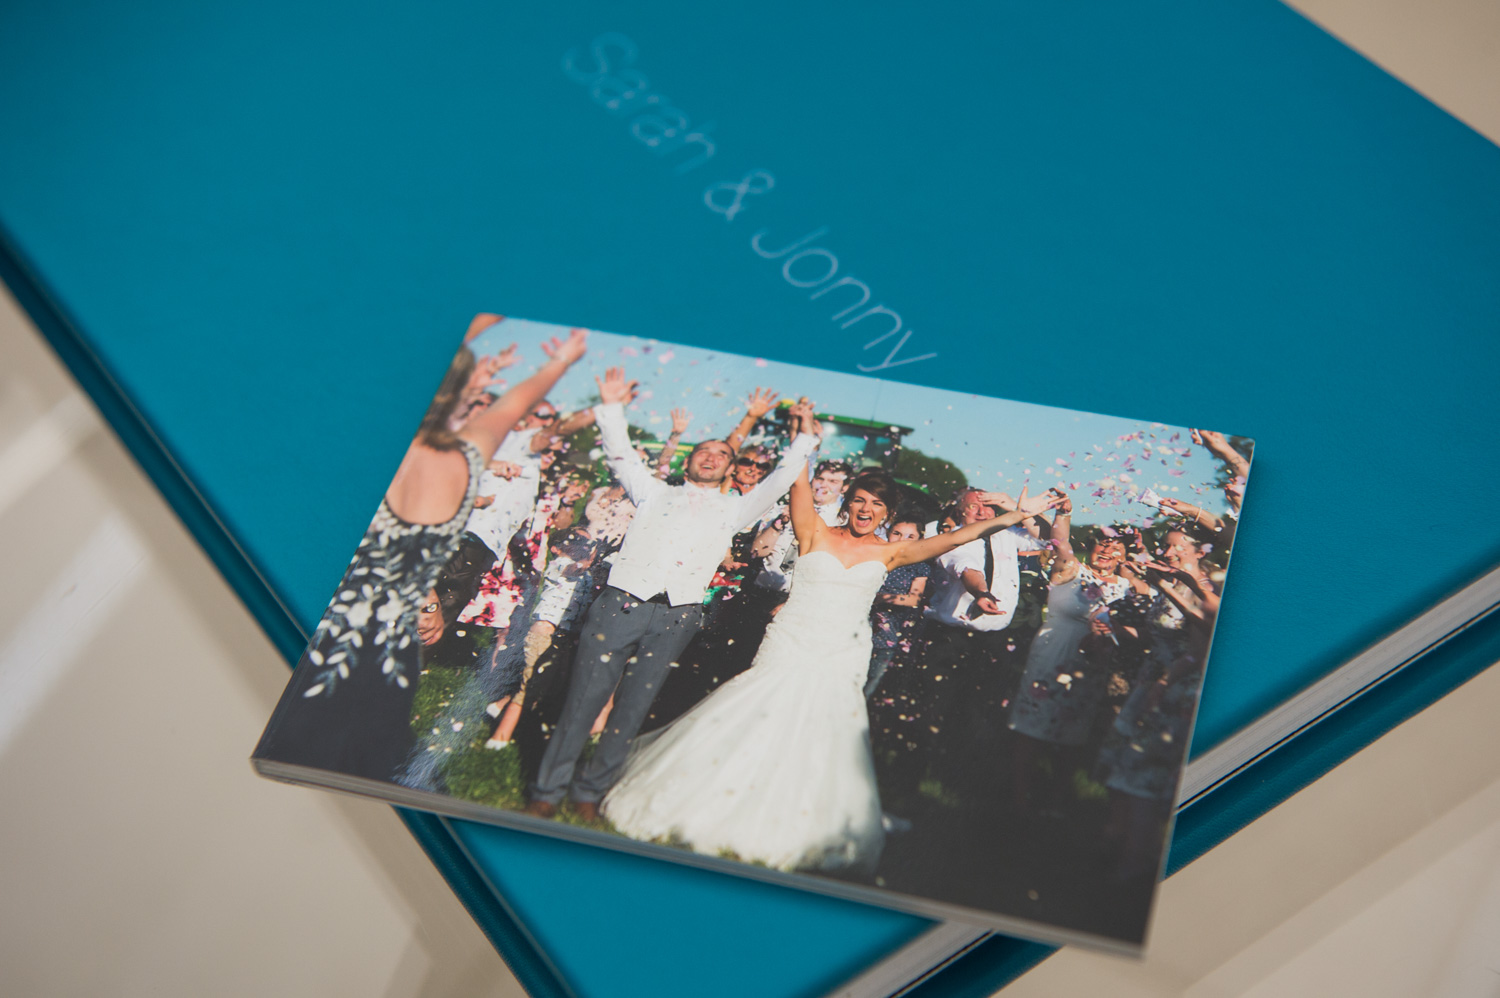 A wedding photography mini-book